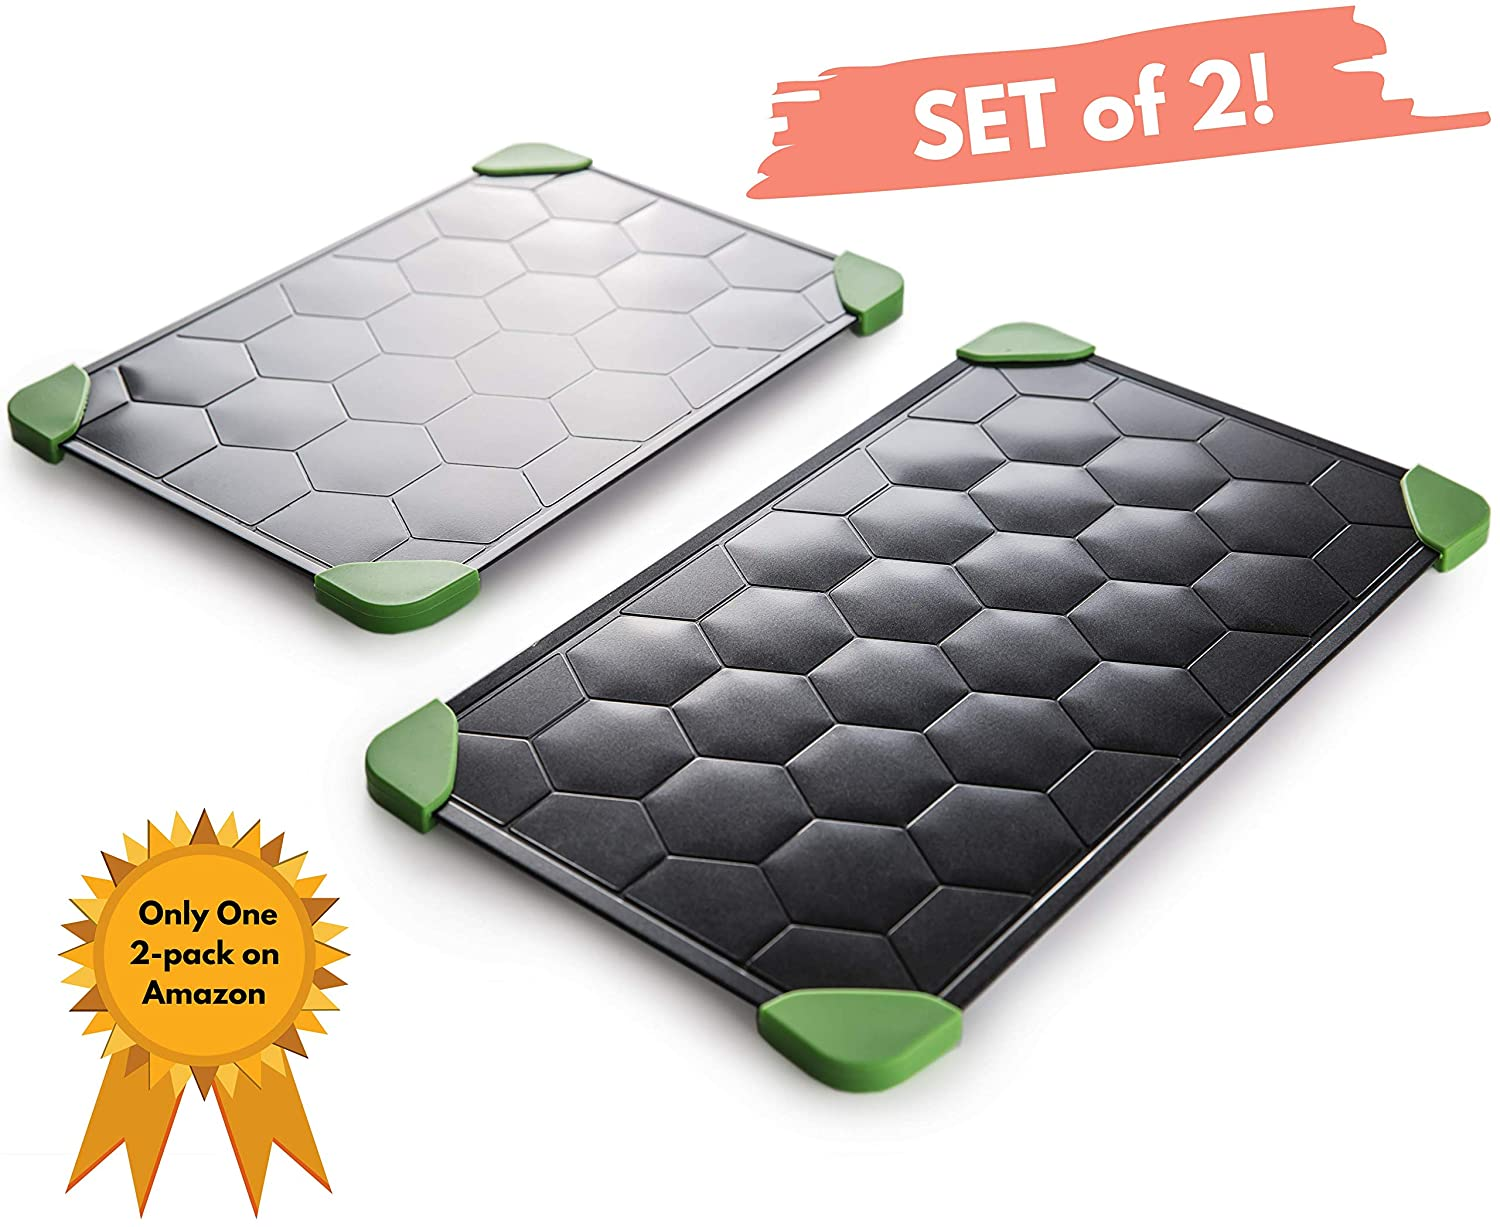 2x Defrosting Tray for Frozen Food (Size L & M) - Super Fast Thawing Tray for Frozen Meat with EXTRA Tongs + Silicon Brush for Cleaning - Eco Friendly Meat Defroster - Thawing Plate with Drip Tray